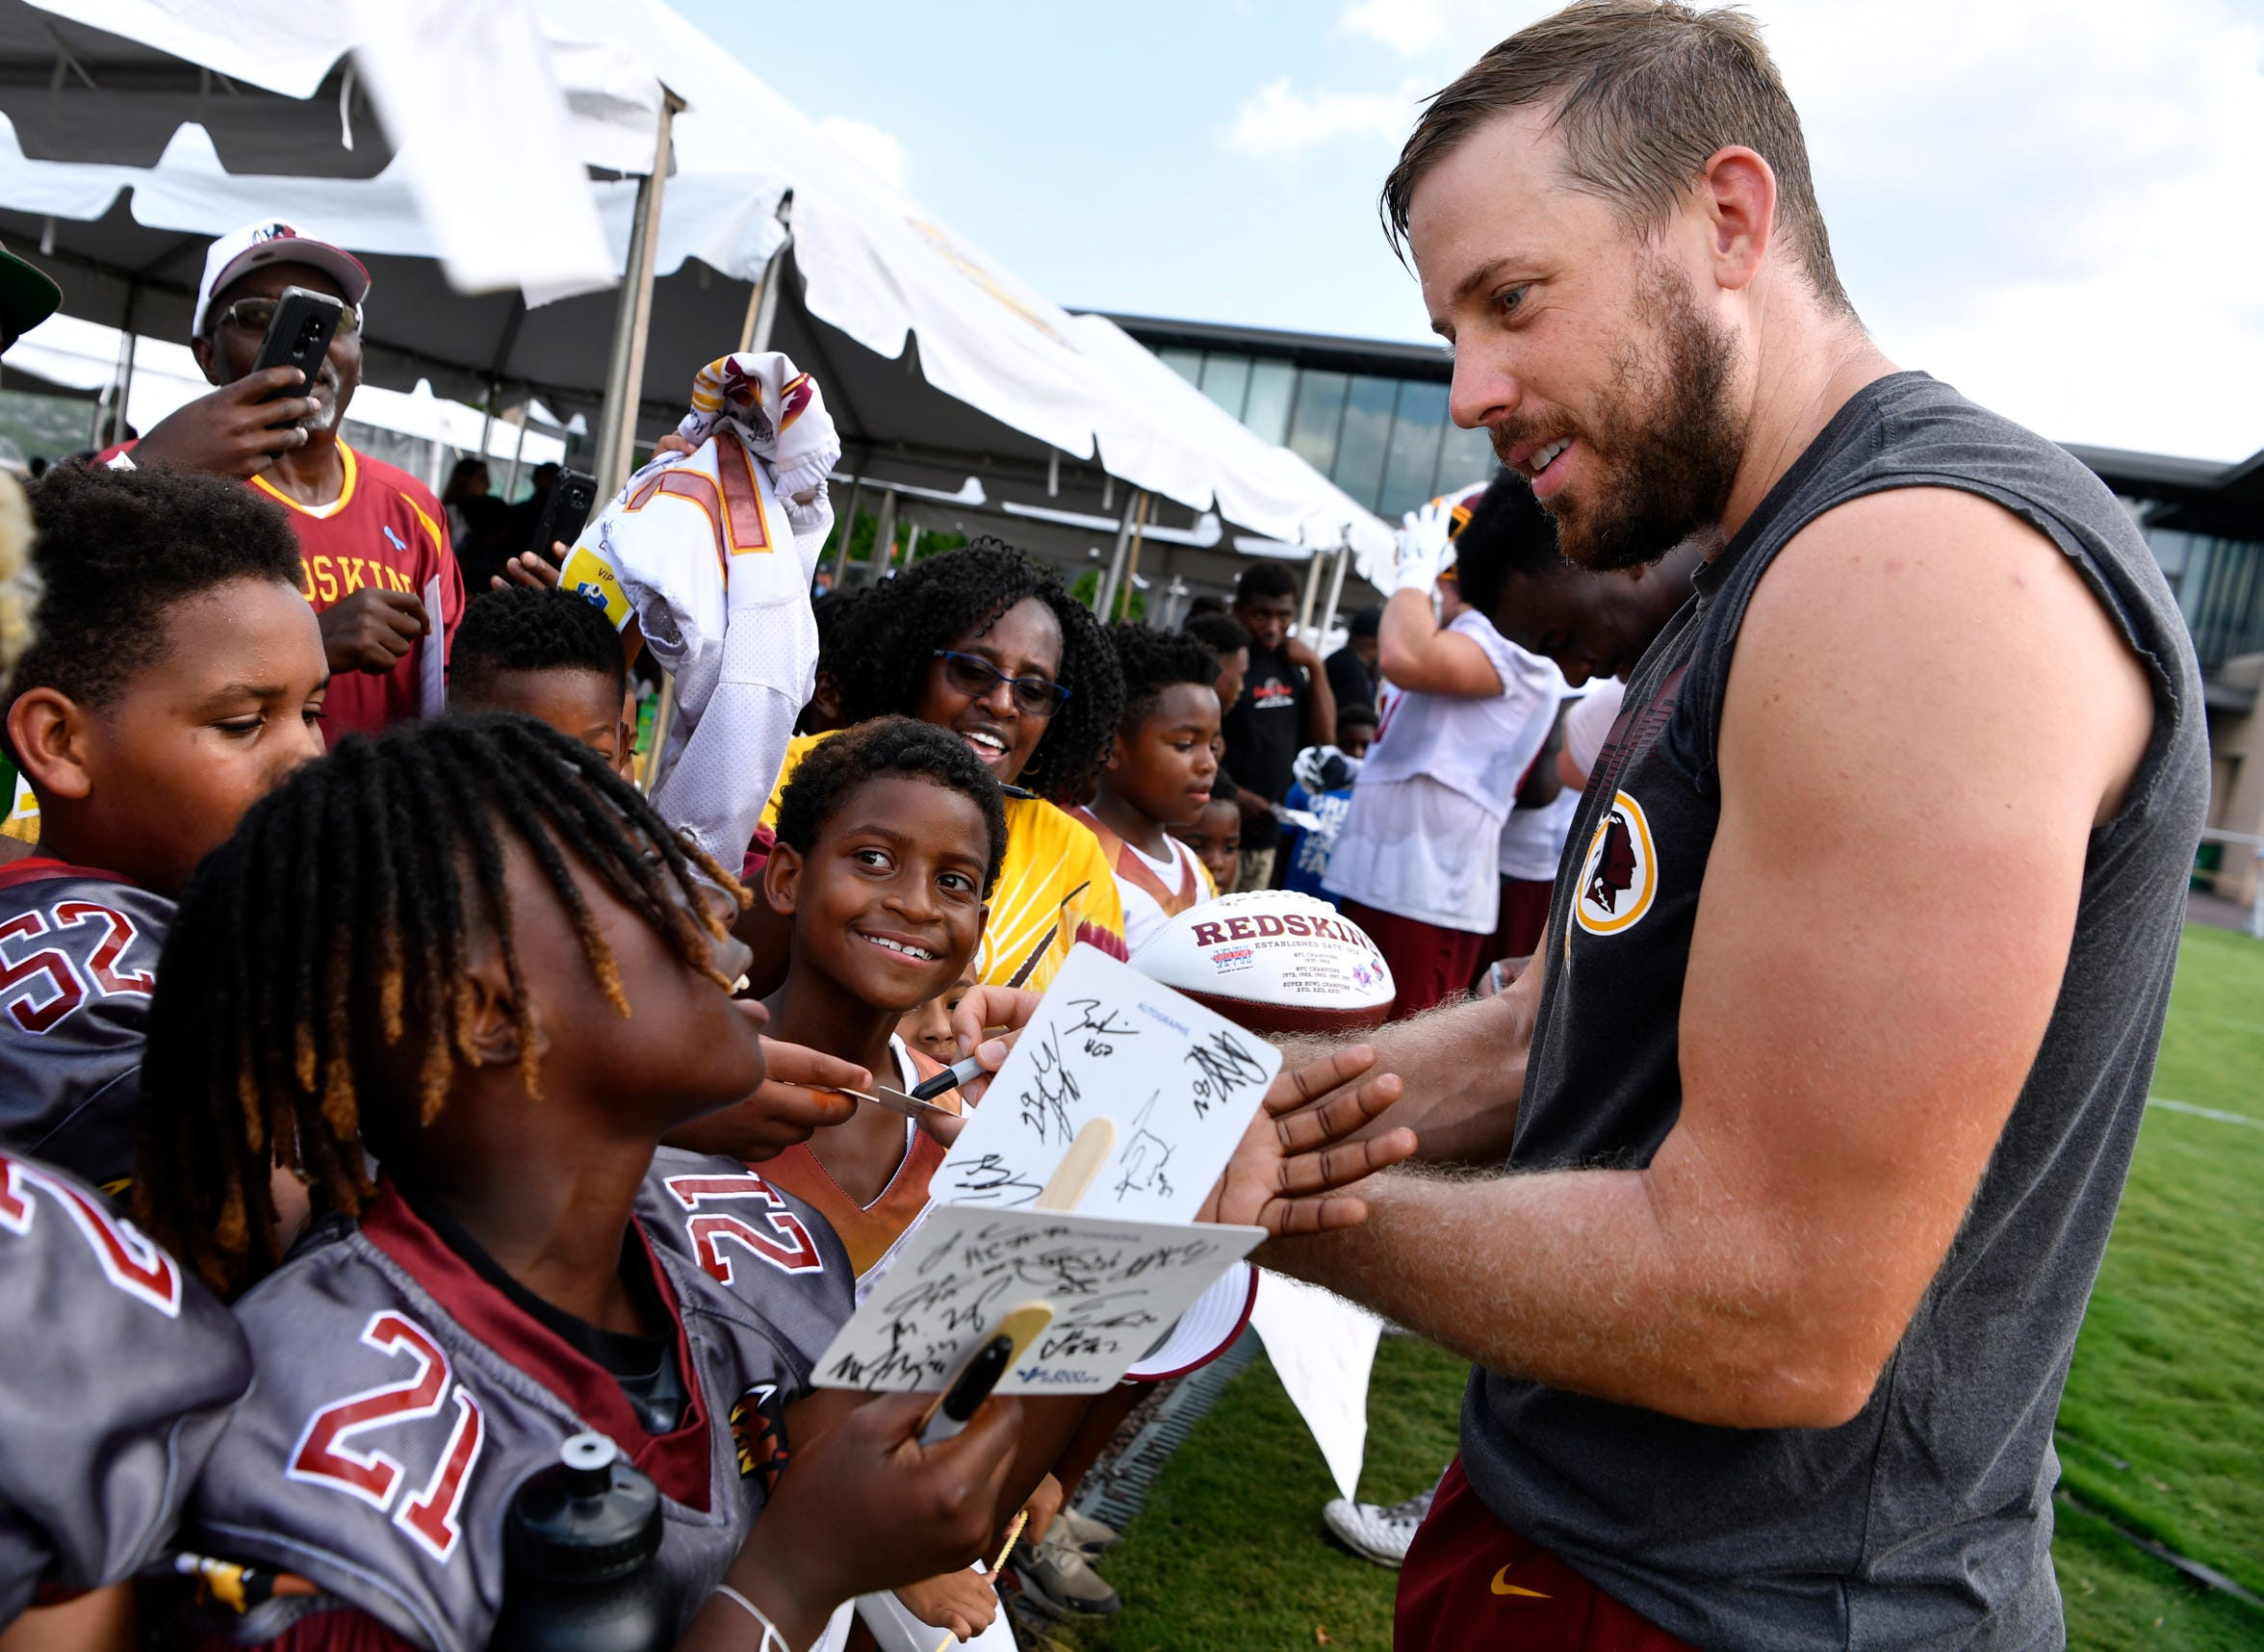 Washington Redskins quarterback Case Keenum signs autographs for children after Tuesday's training camp in Richmond, Va.